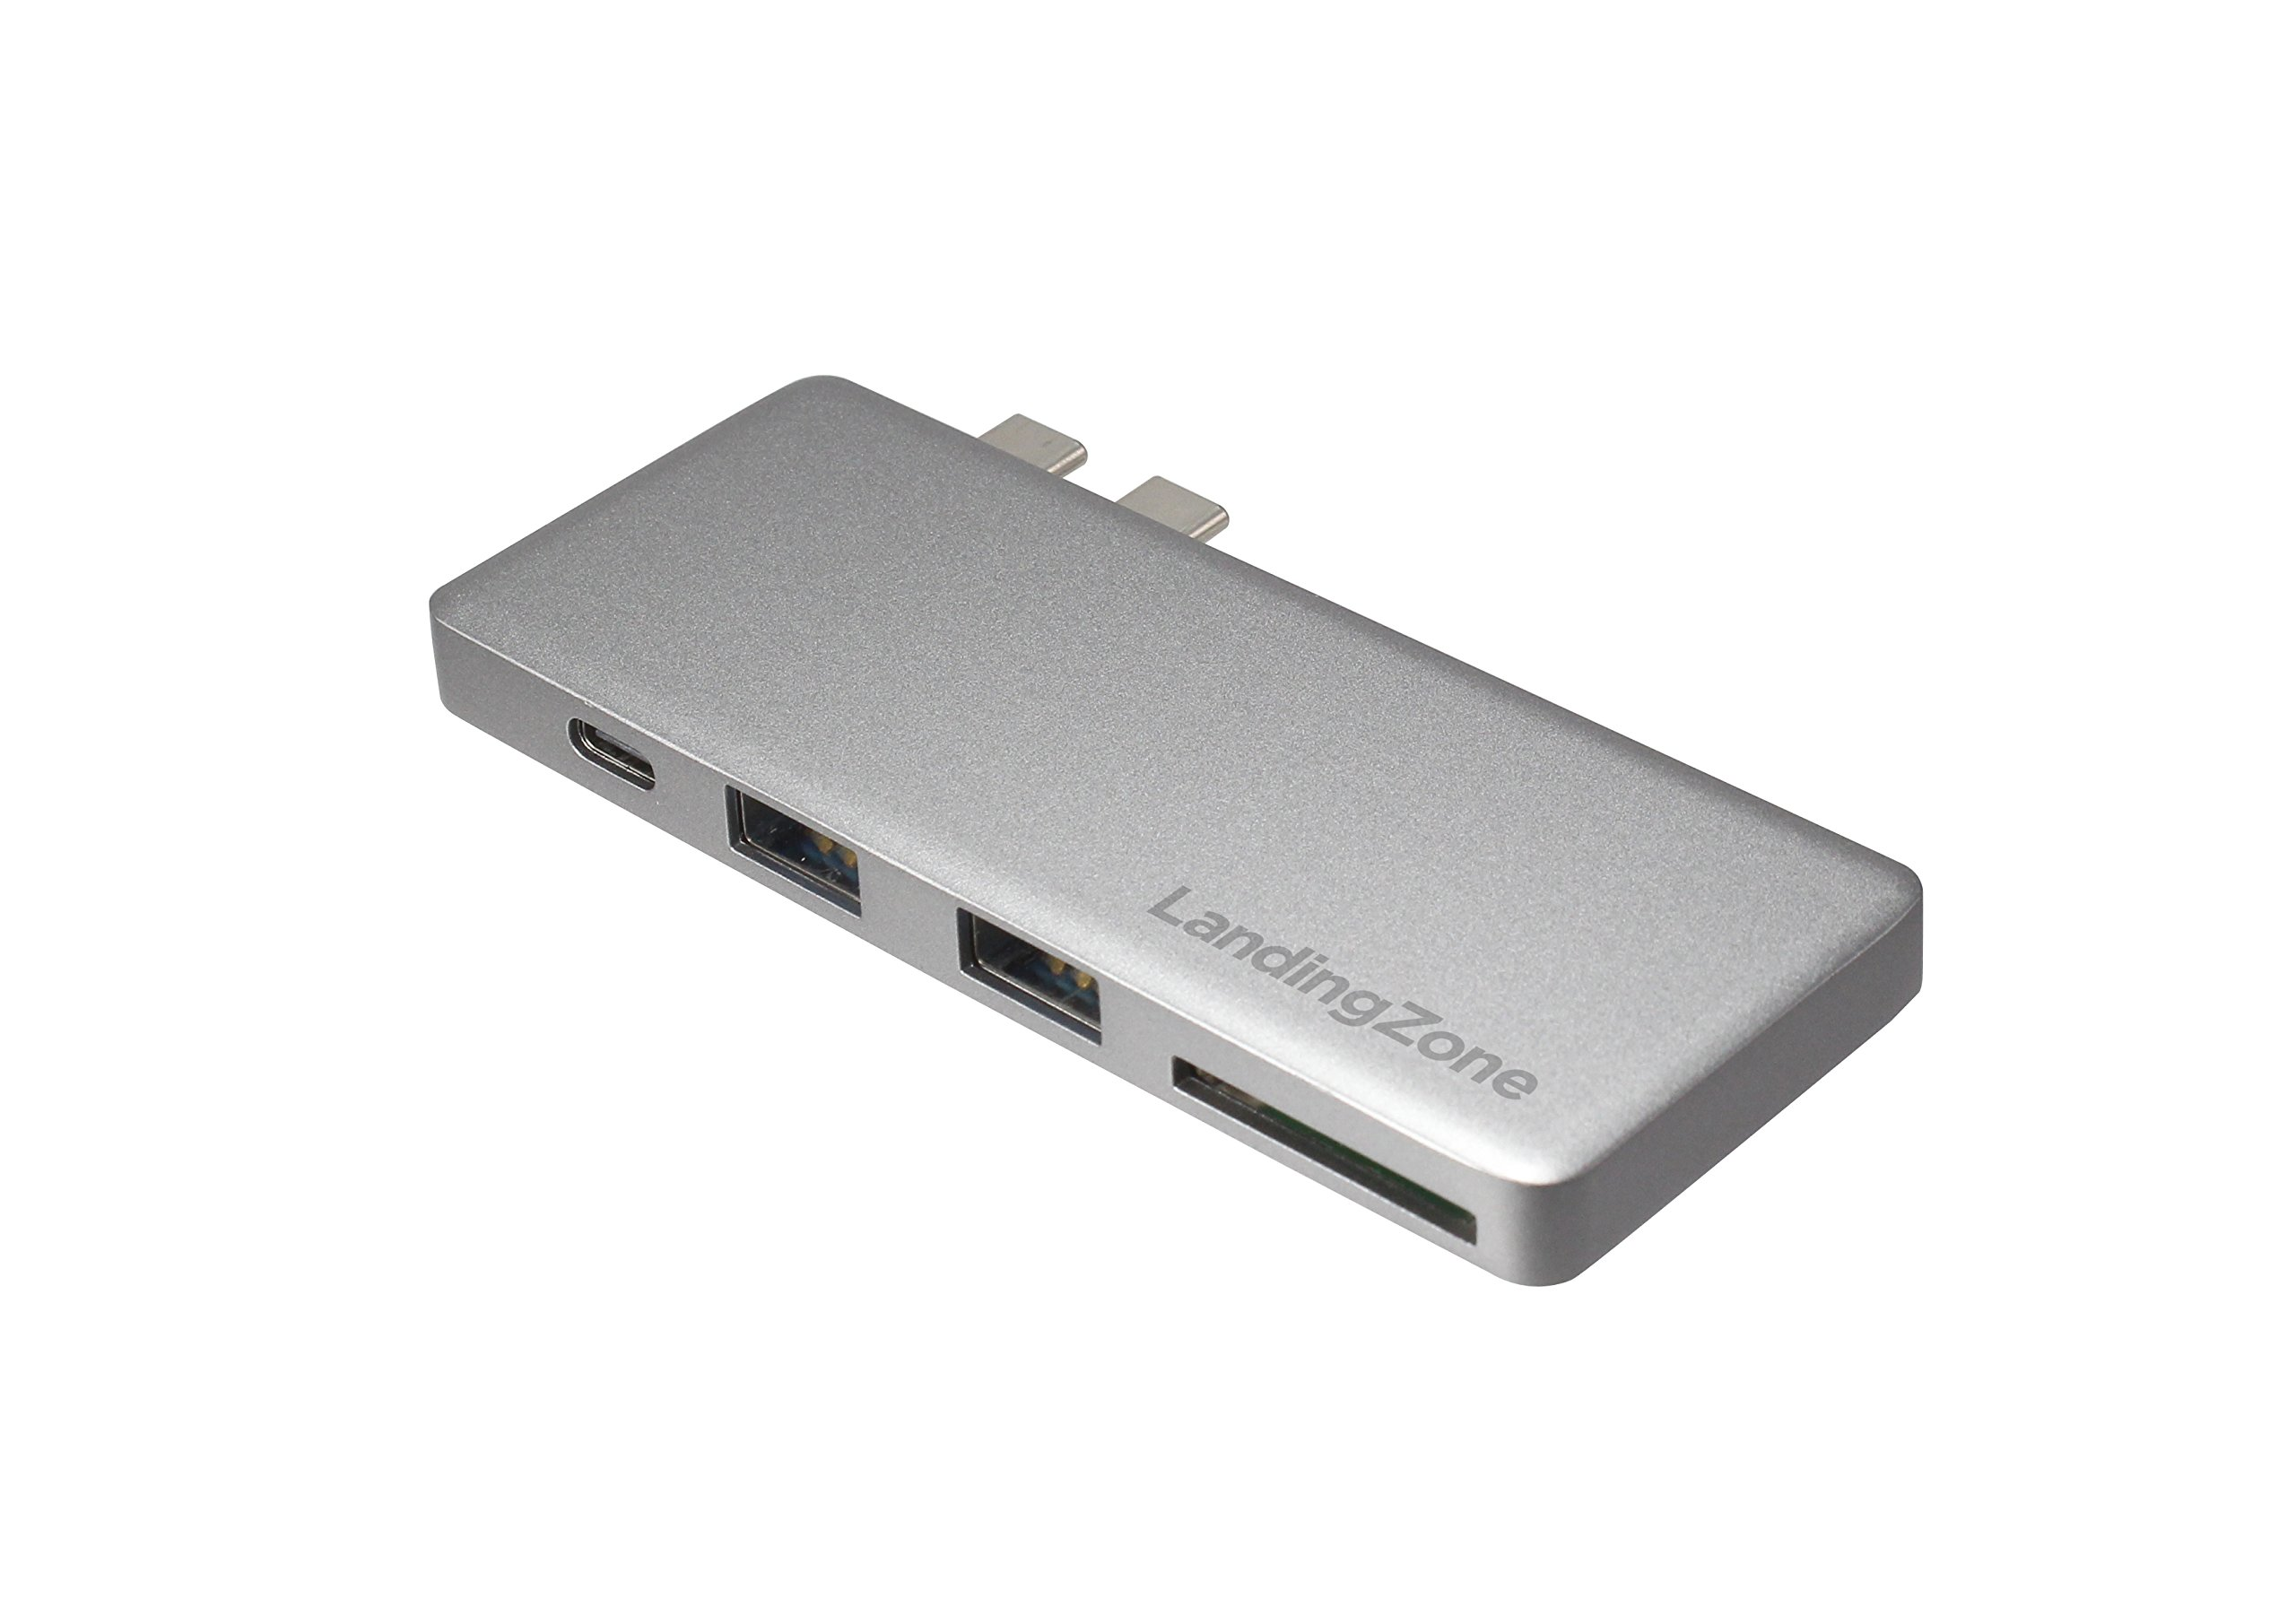 LandingZone USB Type-C Hub for New MacBook Pro Model A1706, A1707 & A1708 Released 2016/2017 (Space Grey)